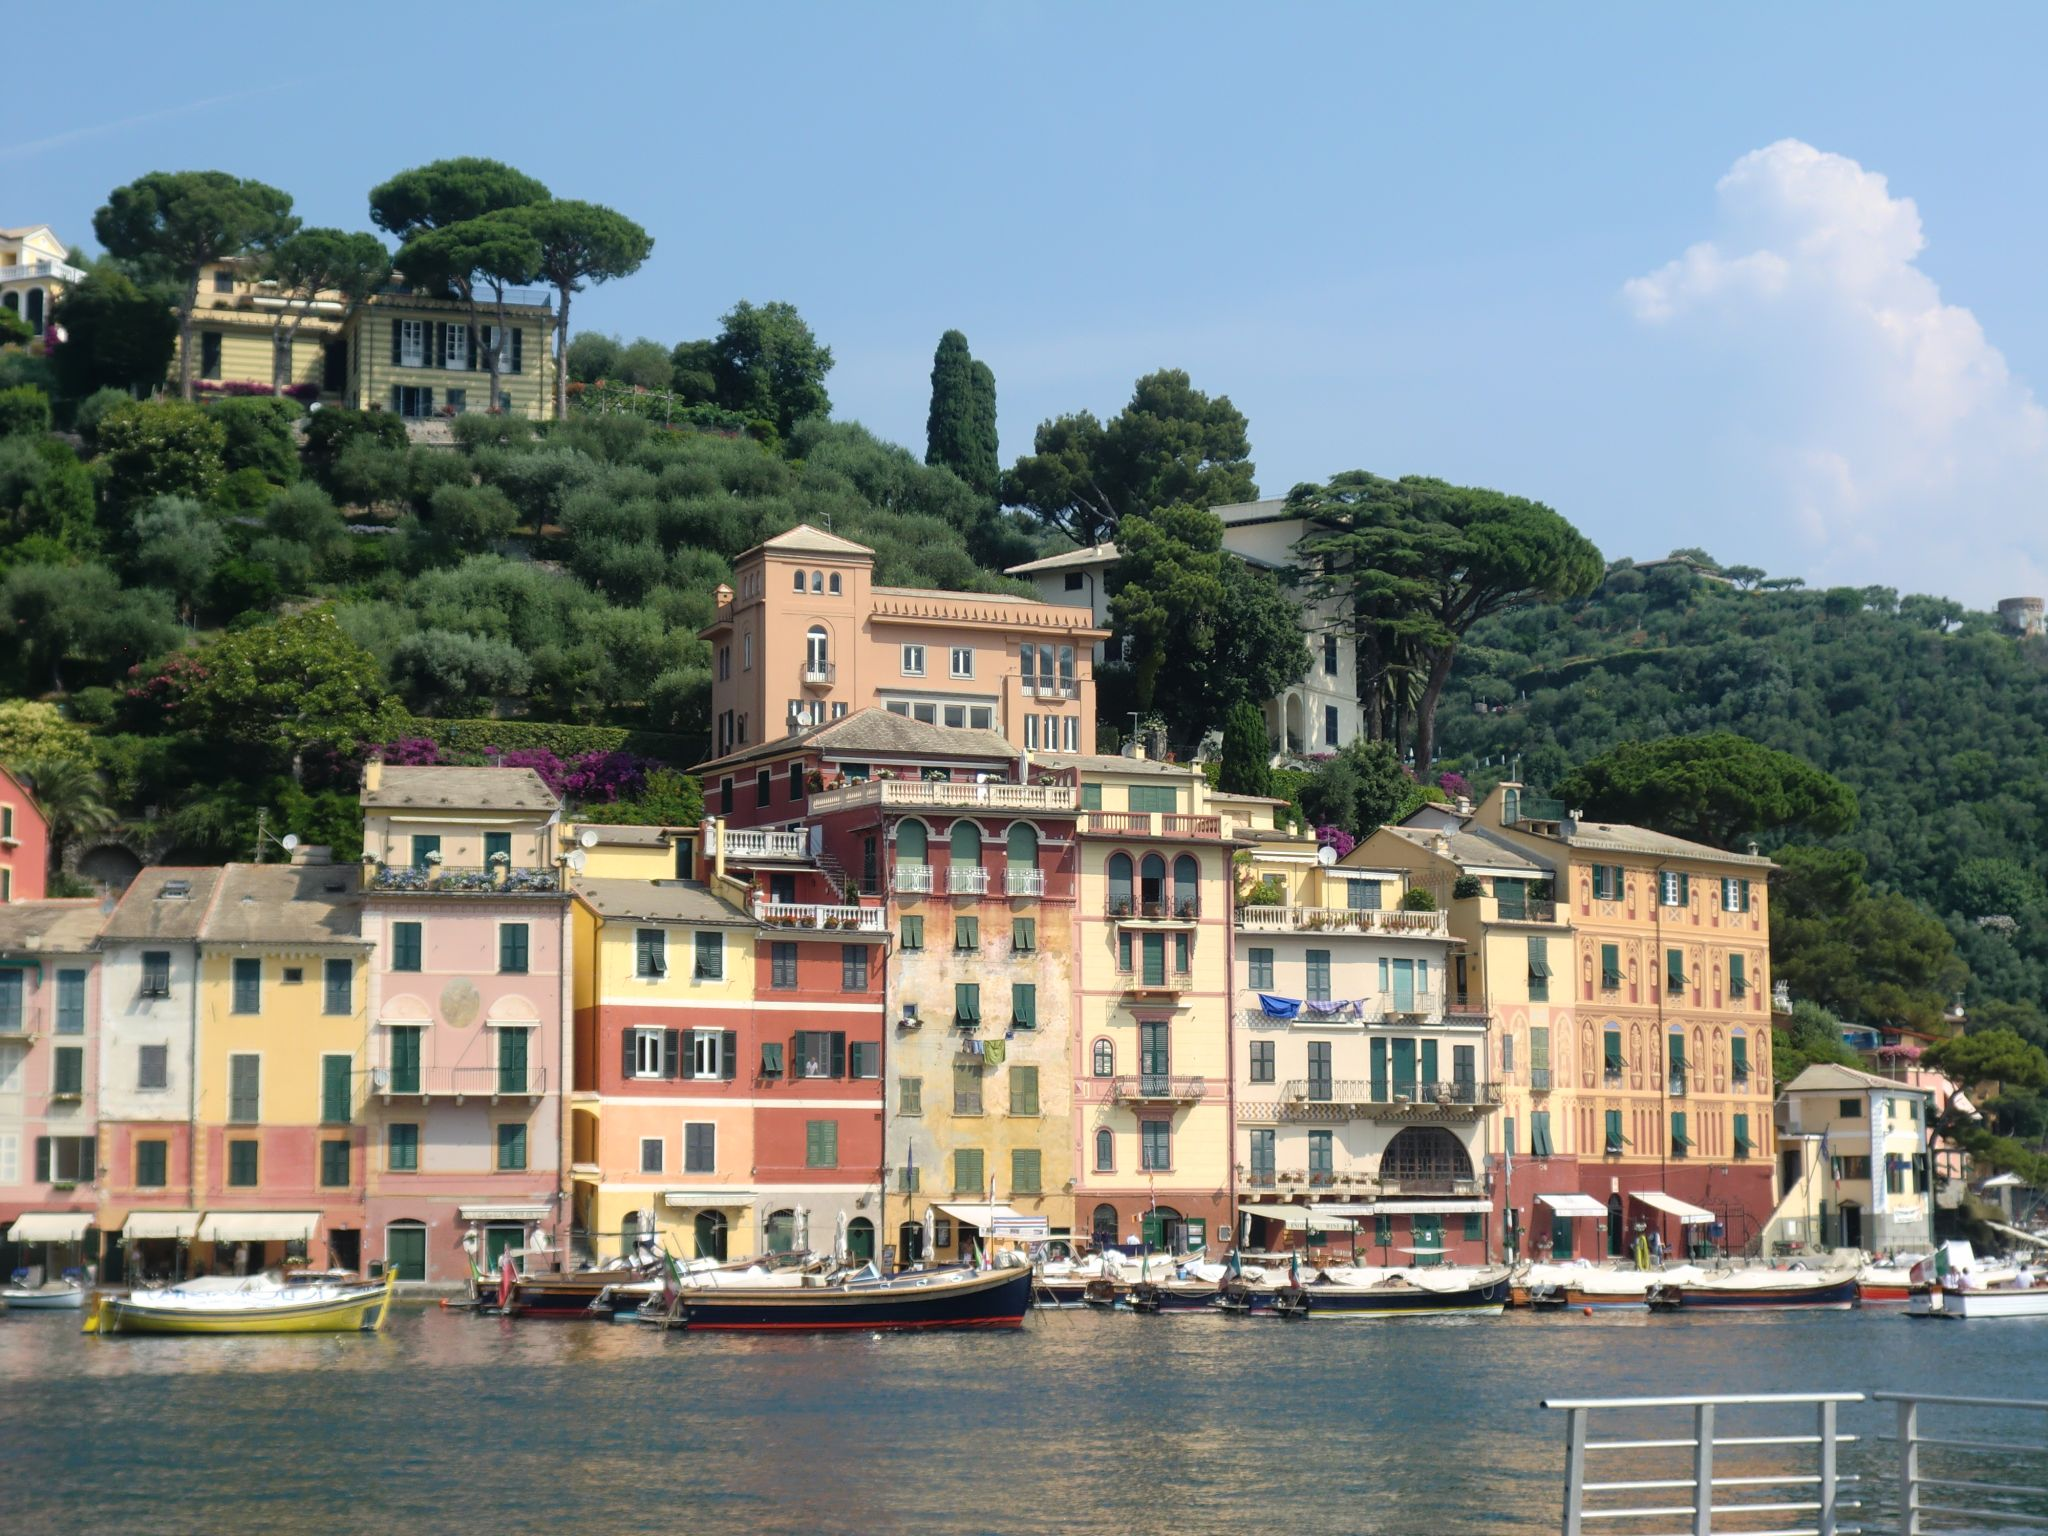 Portofino 15 - Portofino: a small pearl on the sea